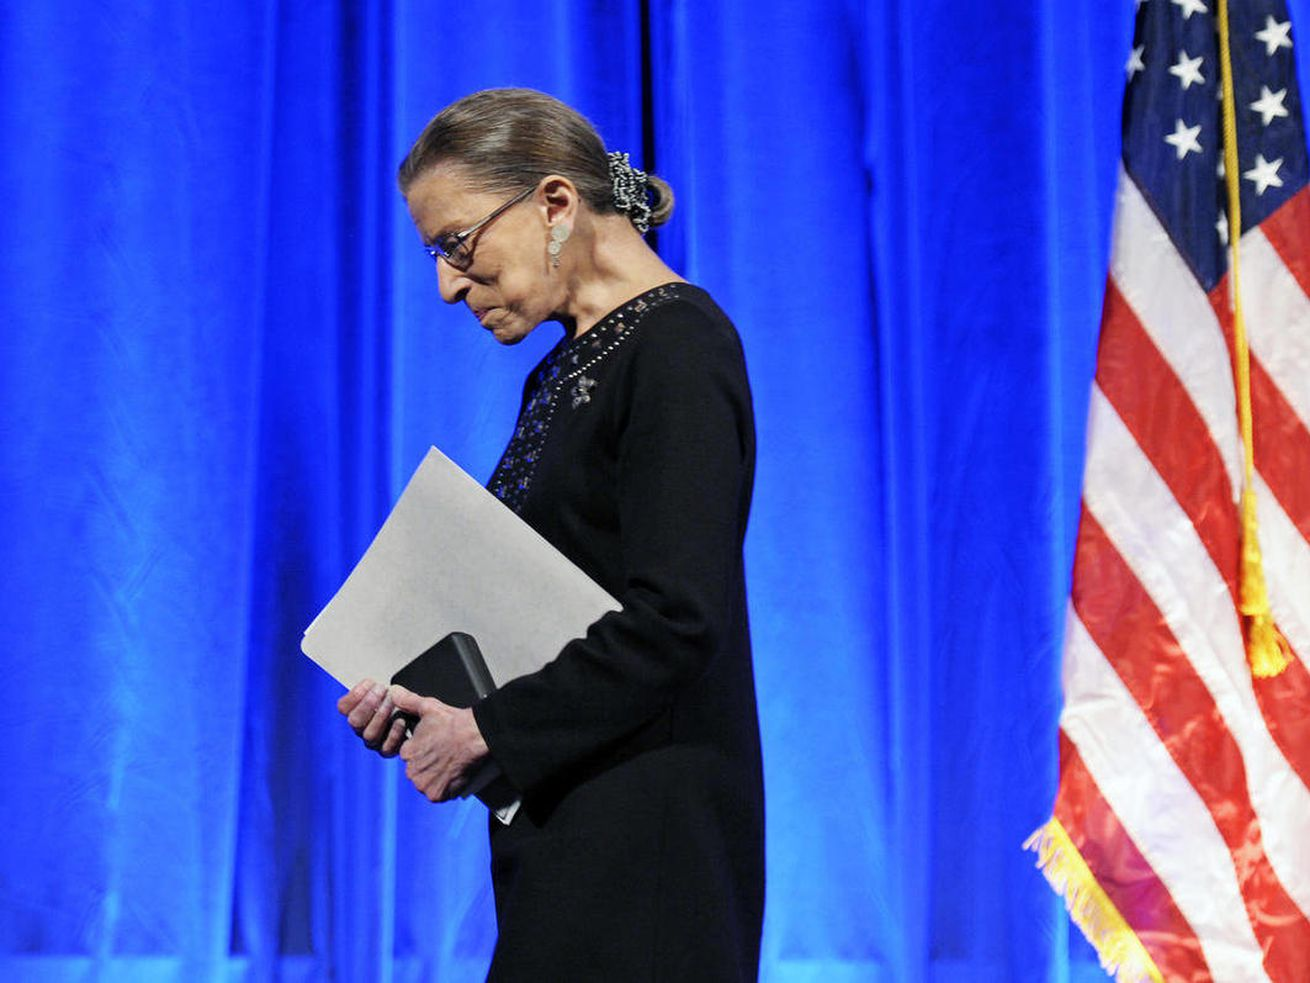 In our opinion: Justice Ginsburg's legacy is anything but ordinary